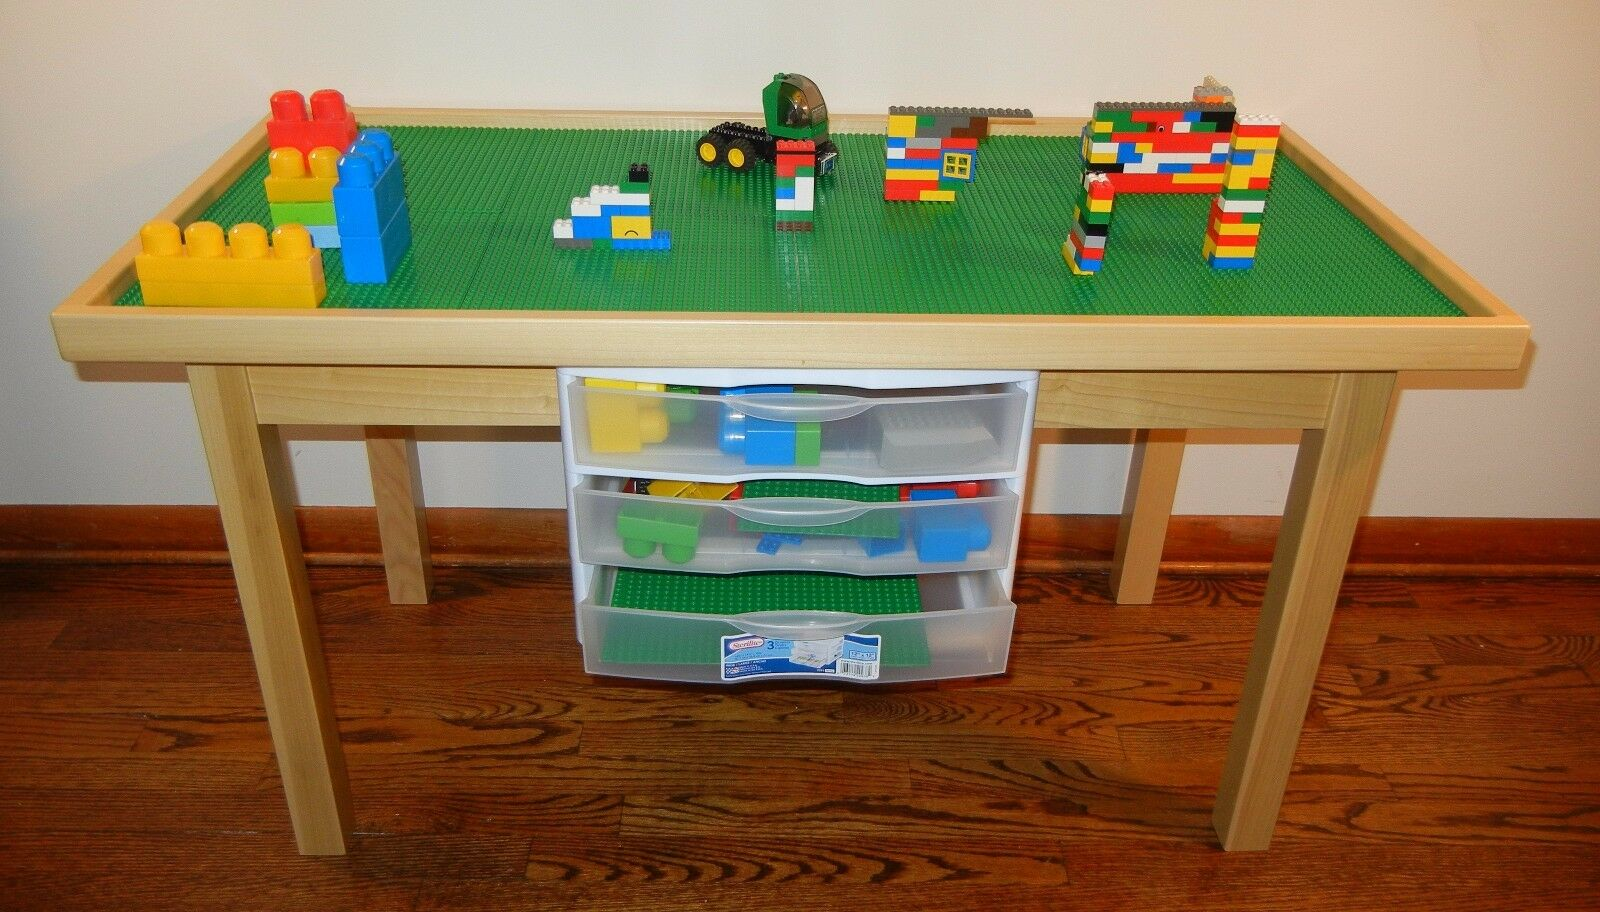 LEGO NATURAL NATURAL NATURAL PLAY TABLE WITH 3 STORAGE DRAWERS SOLID WOOD -22  HIGH LEGS c8a6d5